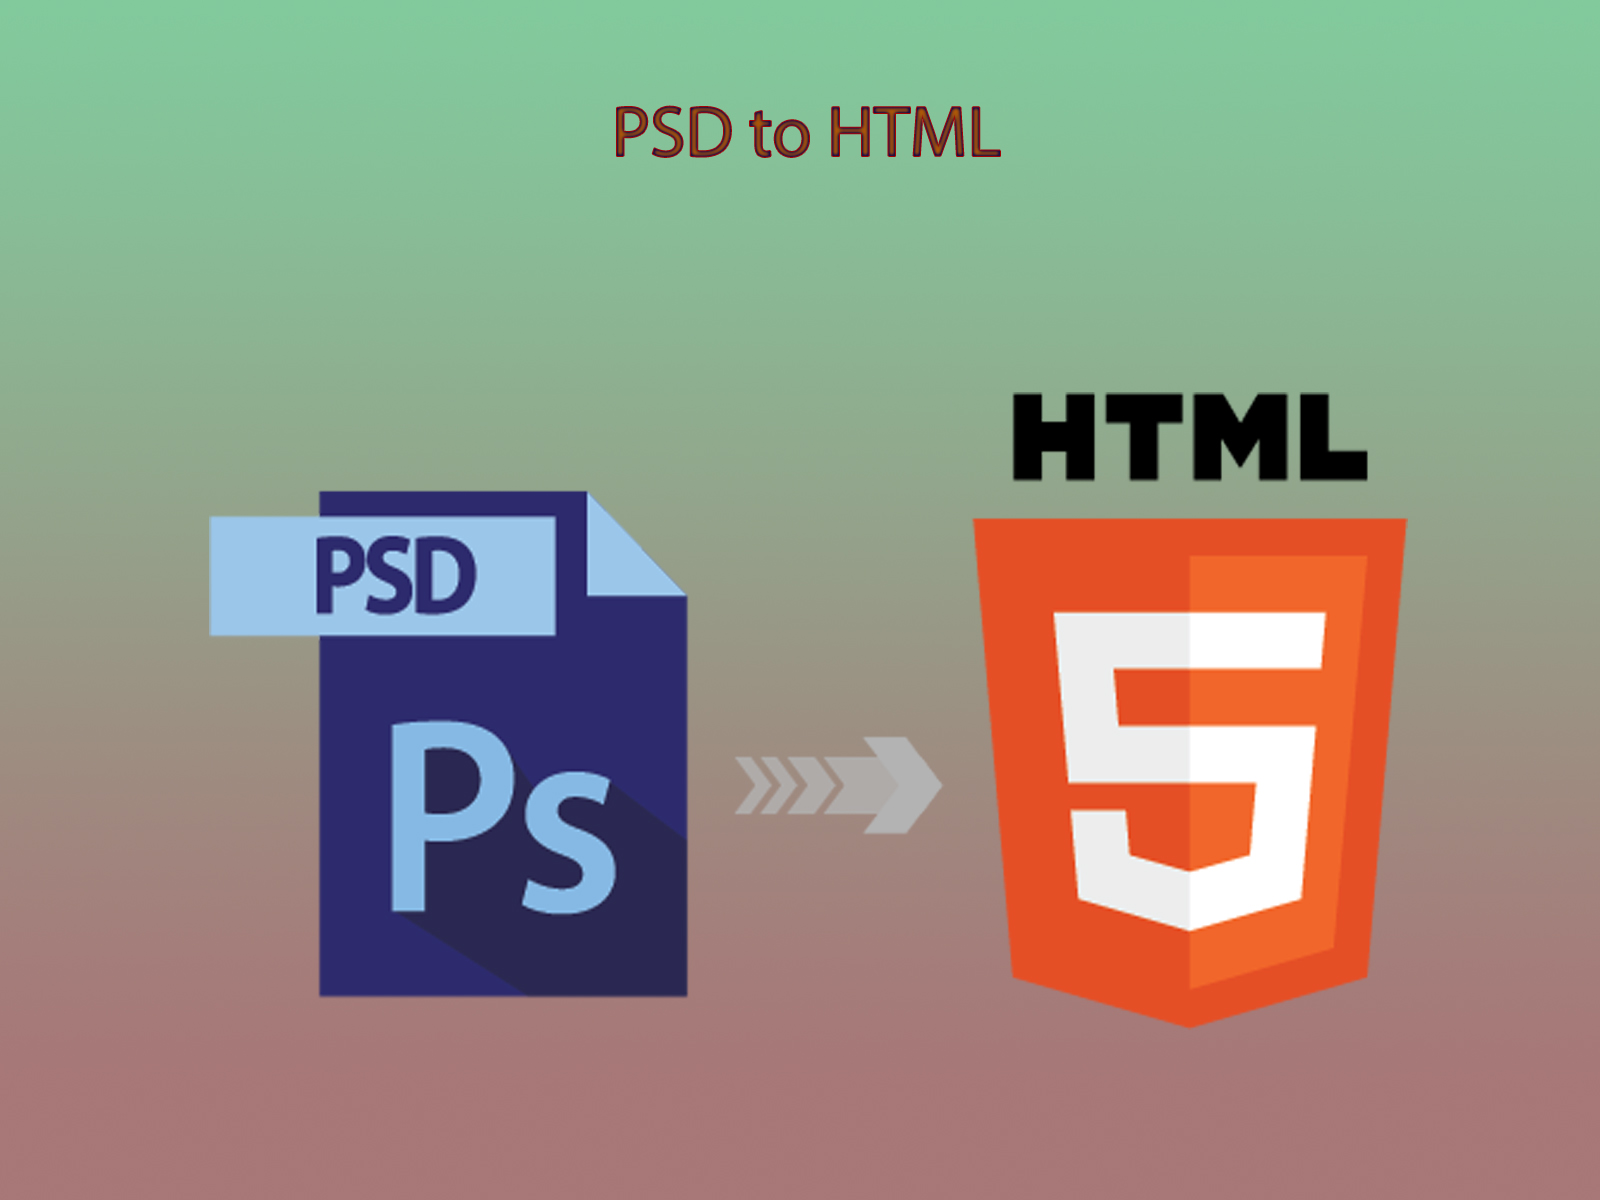 convert PSD to HTML with bootstrap